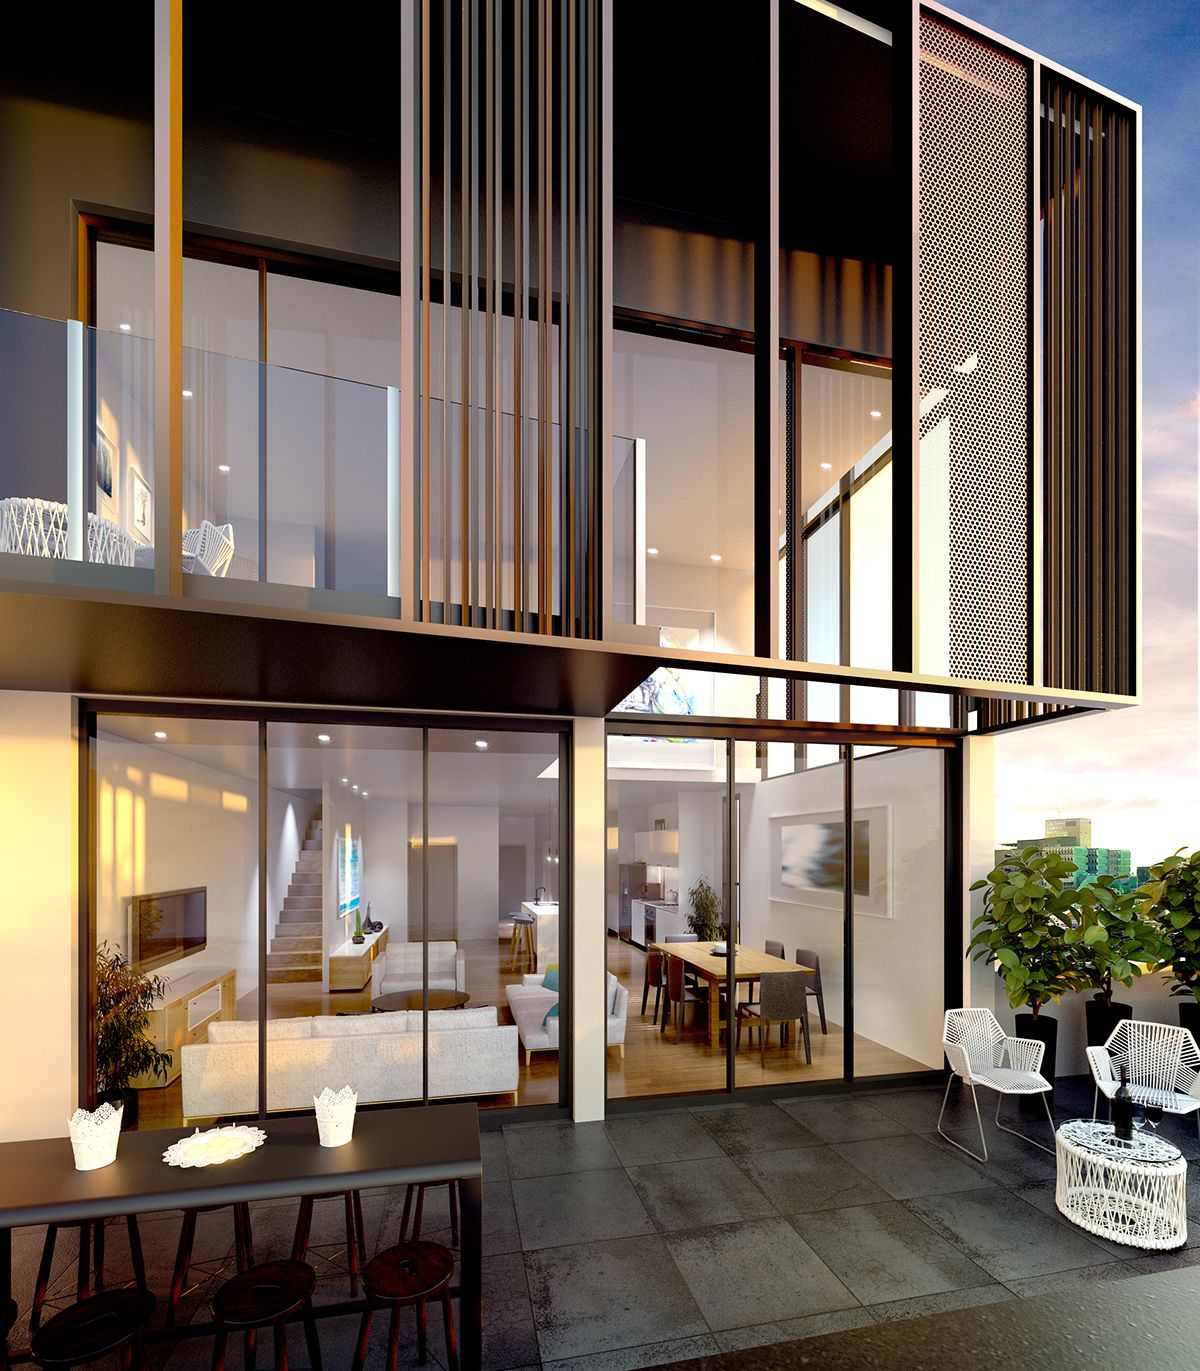 Southbank Apartments on Behance   Home decor, Home, Room